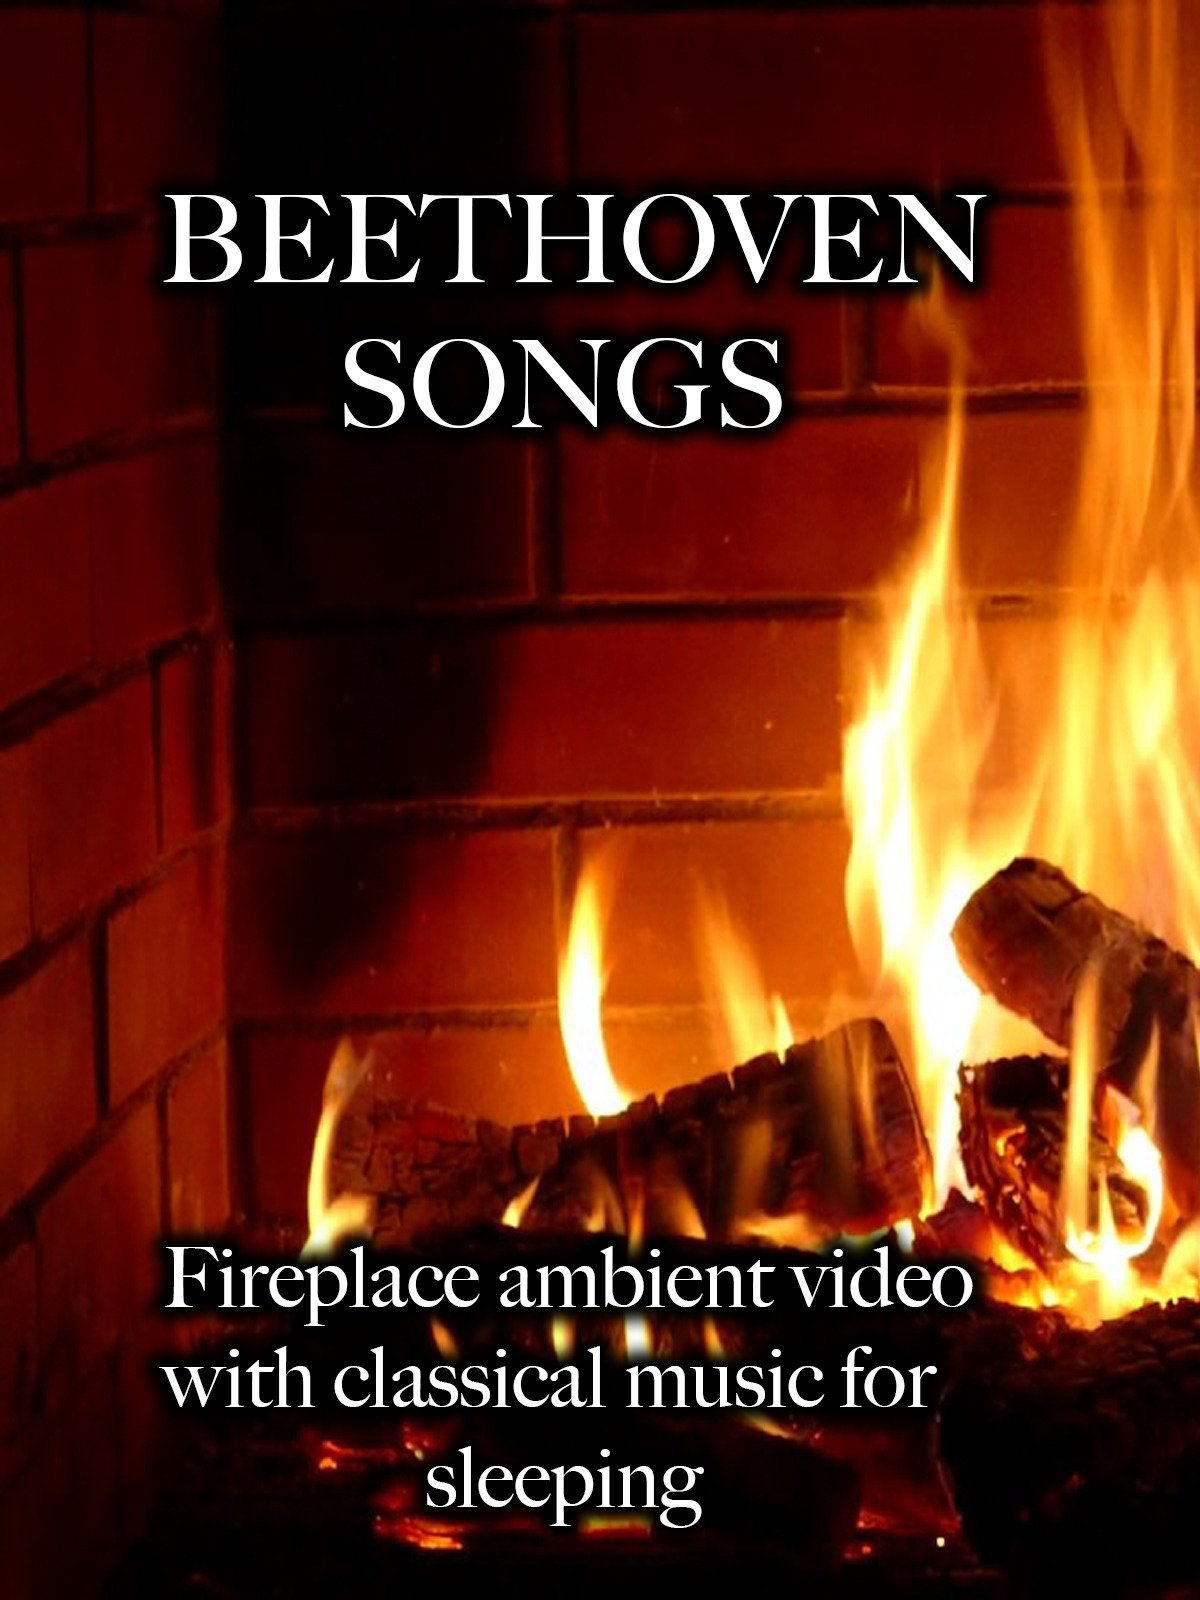 Beethoven Songs Fireplace Ambient Video with Classical Music for Sleeping